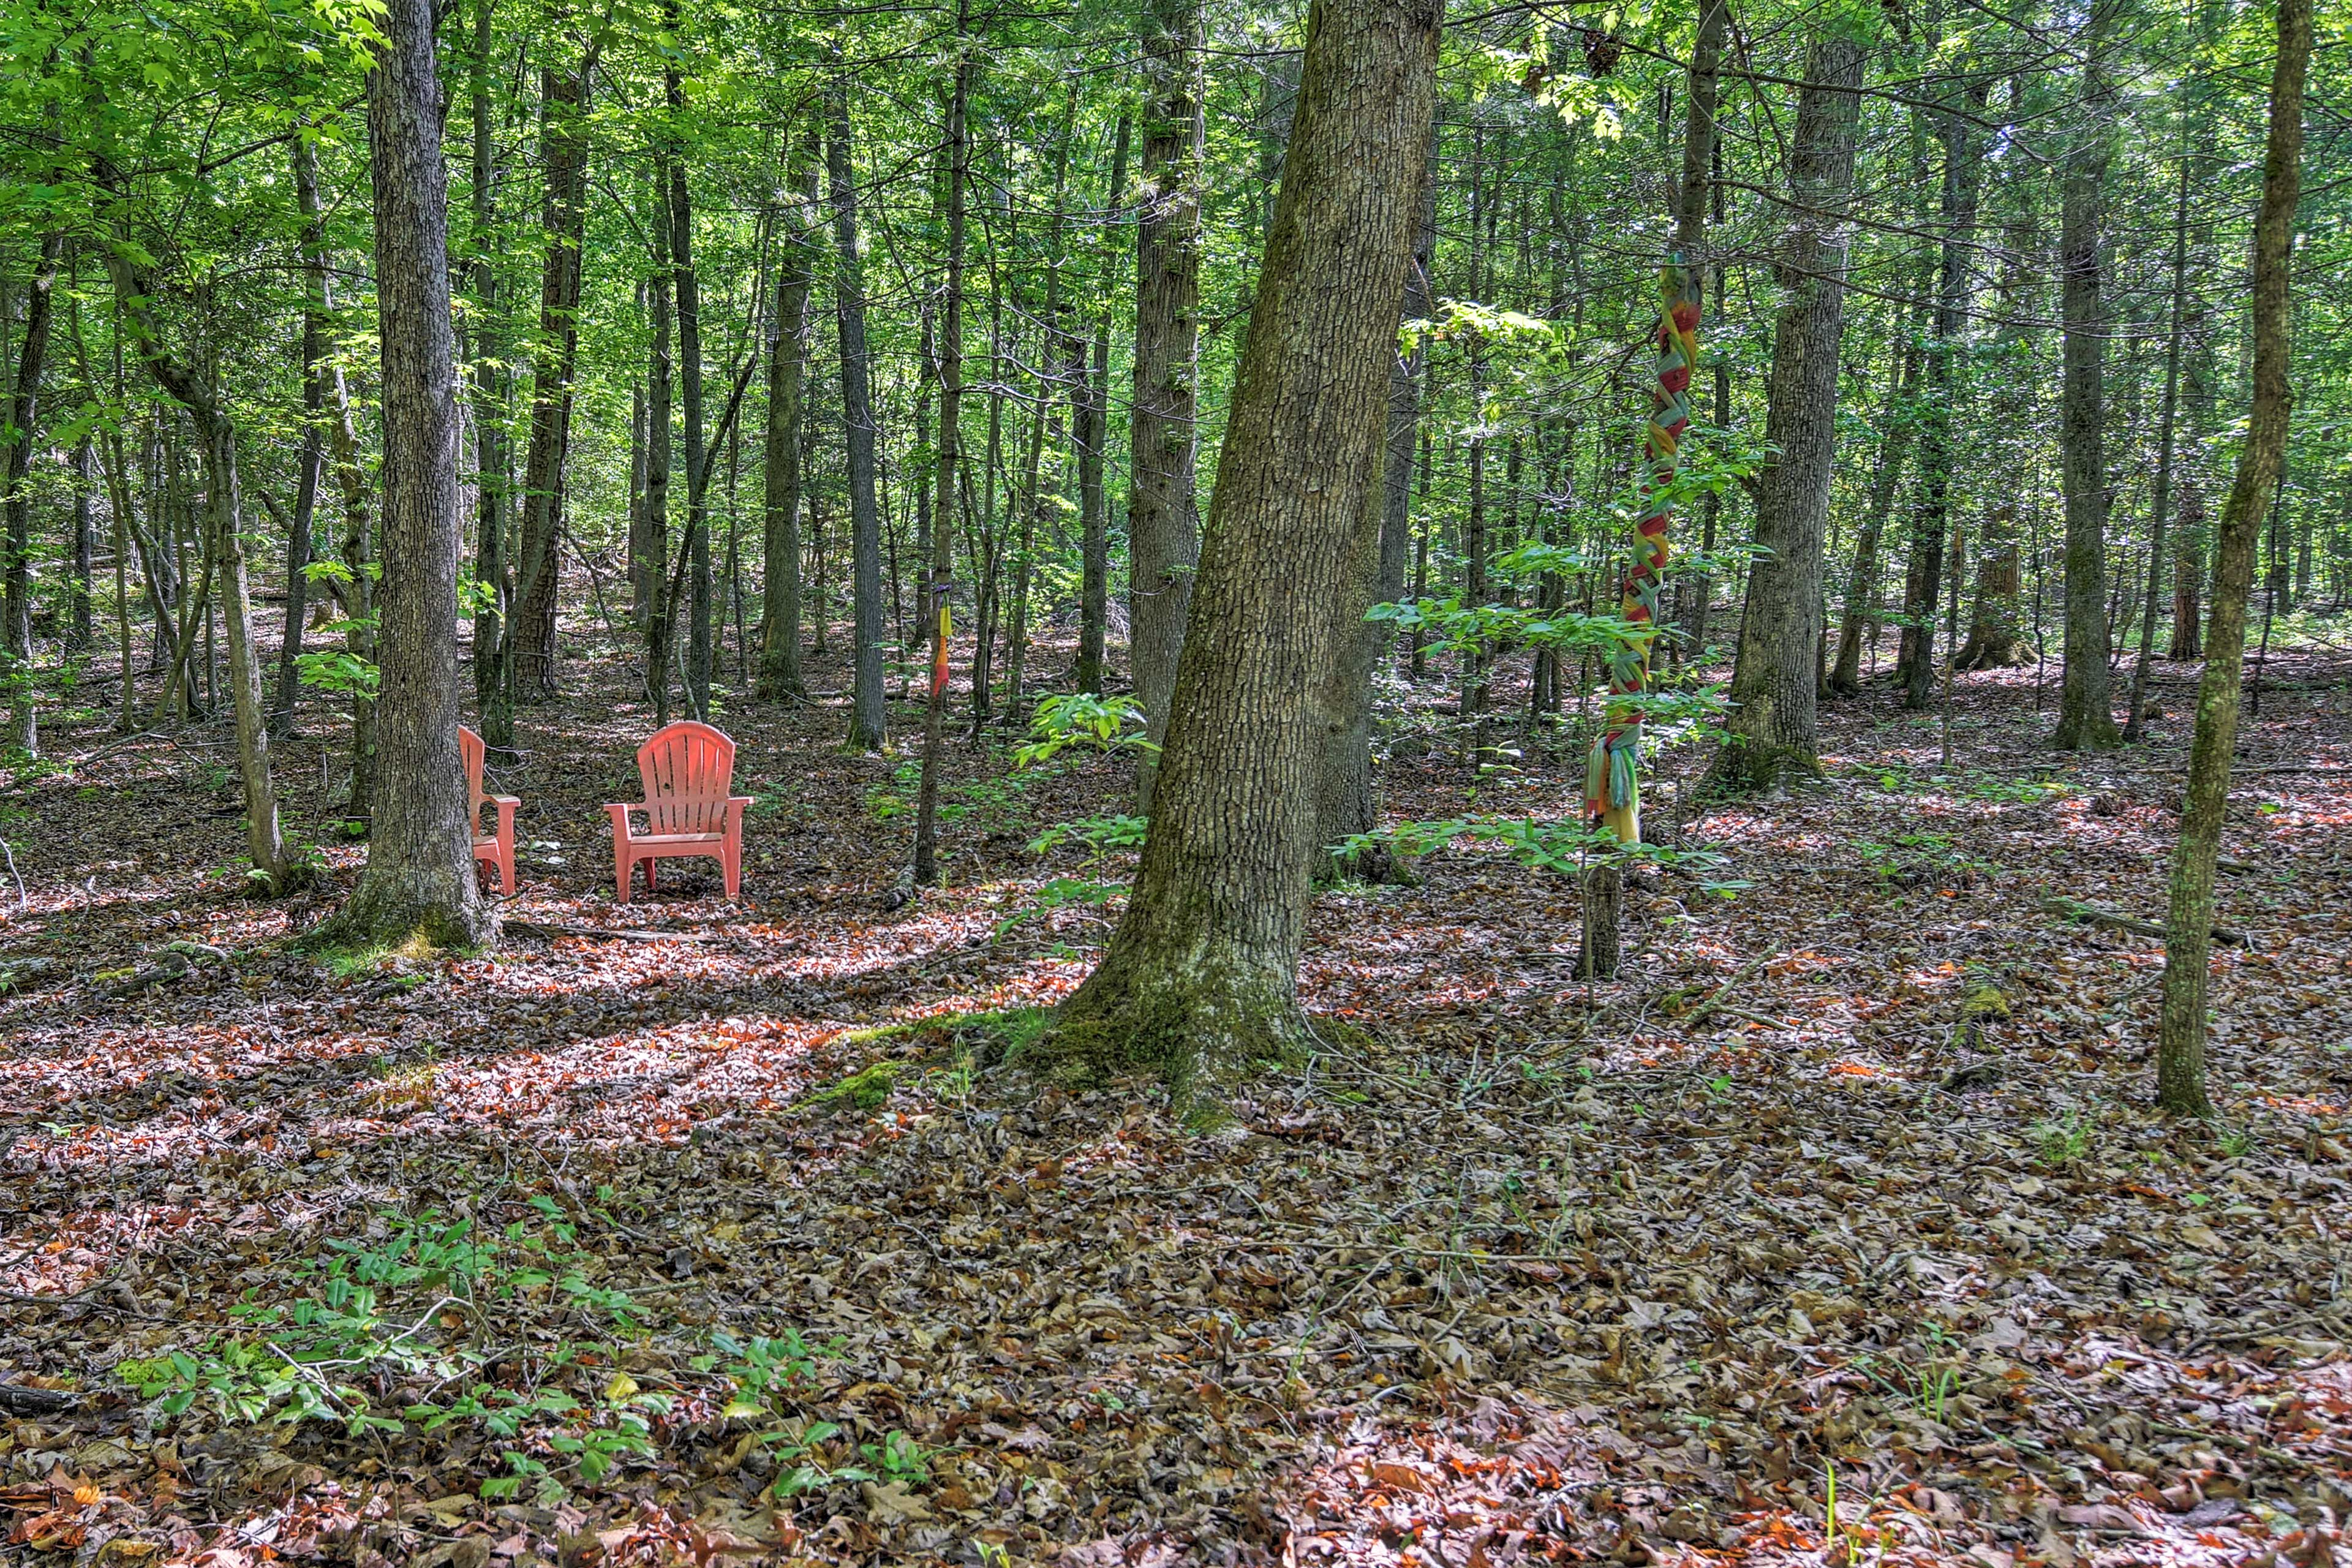 Take time to listen to the sounds of nature in the peaceful national forest.